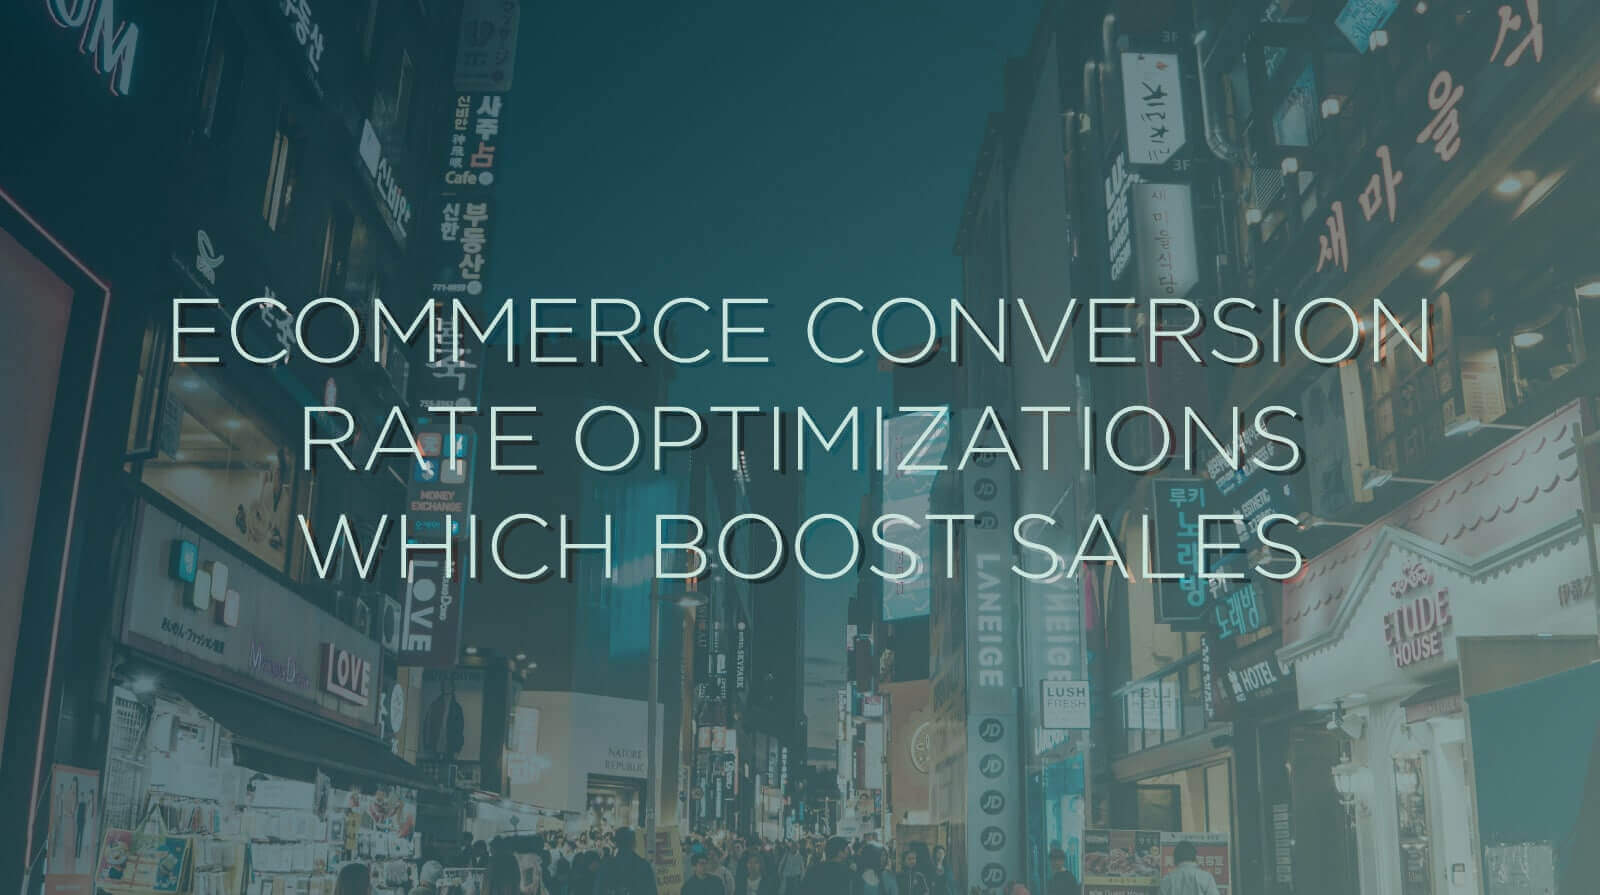 12 Ecommerce Conversion Rate Optimizations Which Boost Sales